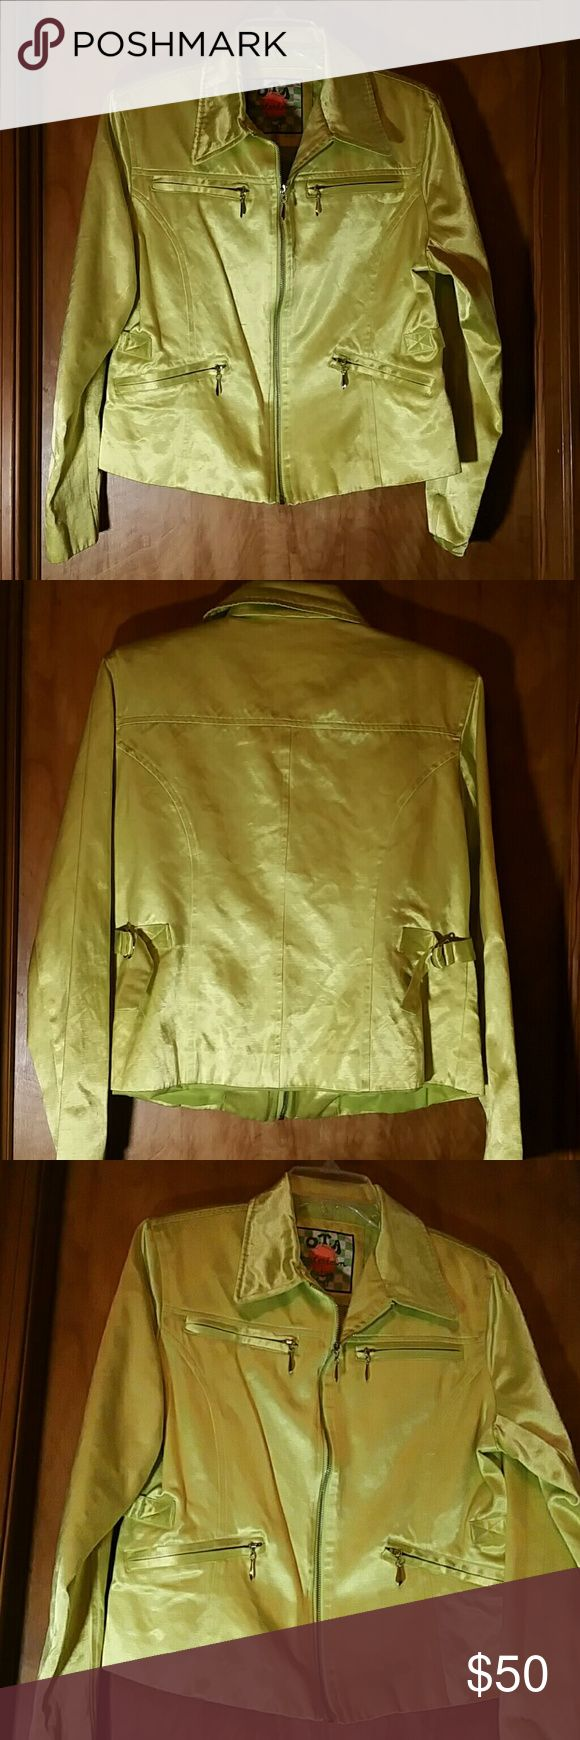 Lime Green Satin Jacket Spring has sprung! Unique vintage jacket in a lovely satin material. Silver zippers, 4 pockets, fully lined, no snags or tears. It will certainly get you noticed! Other